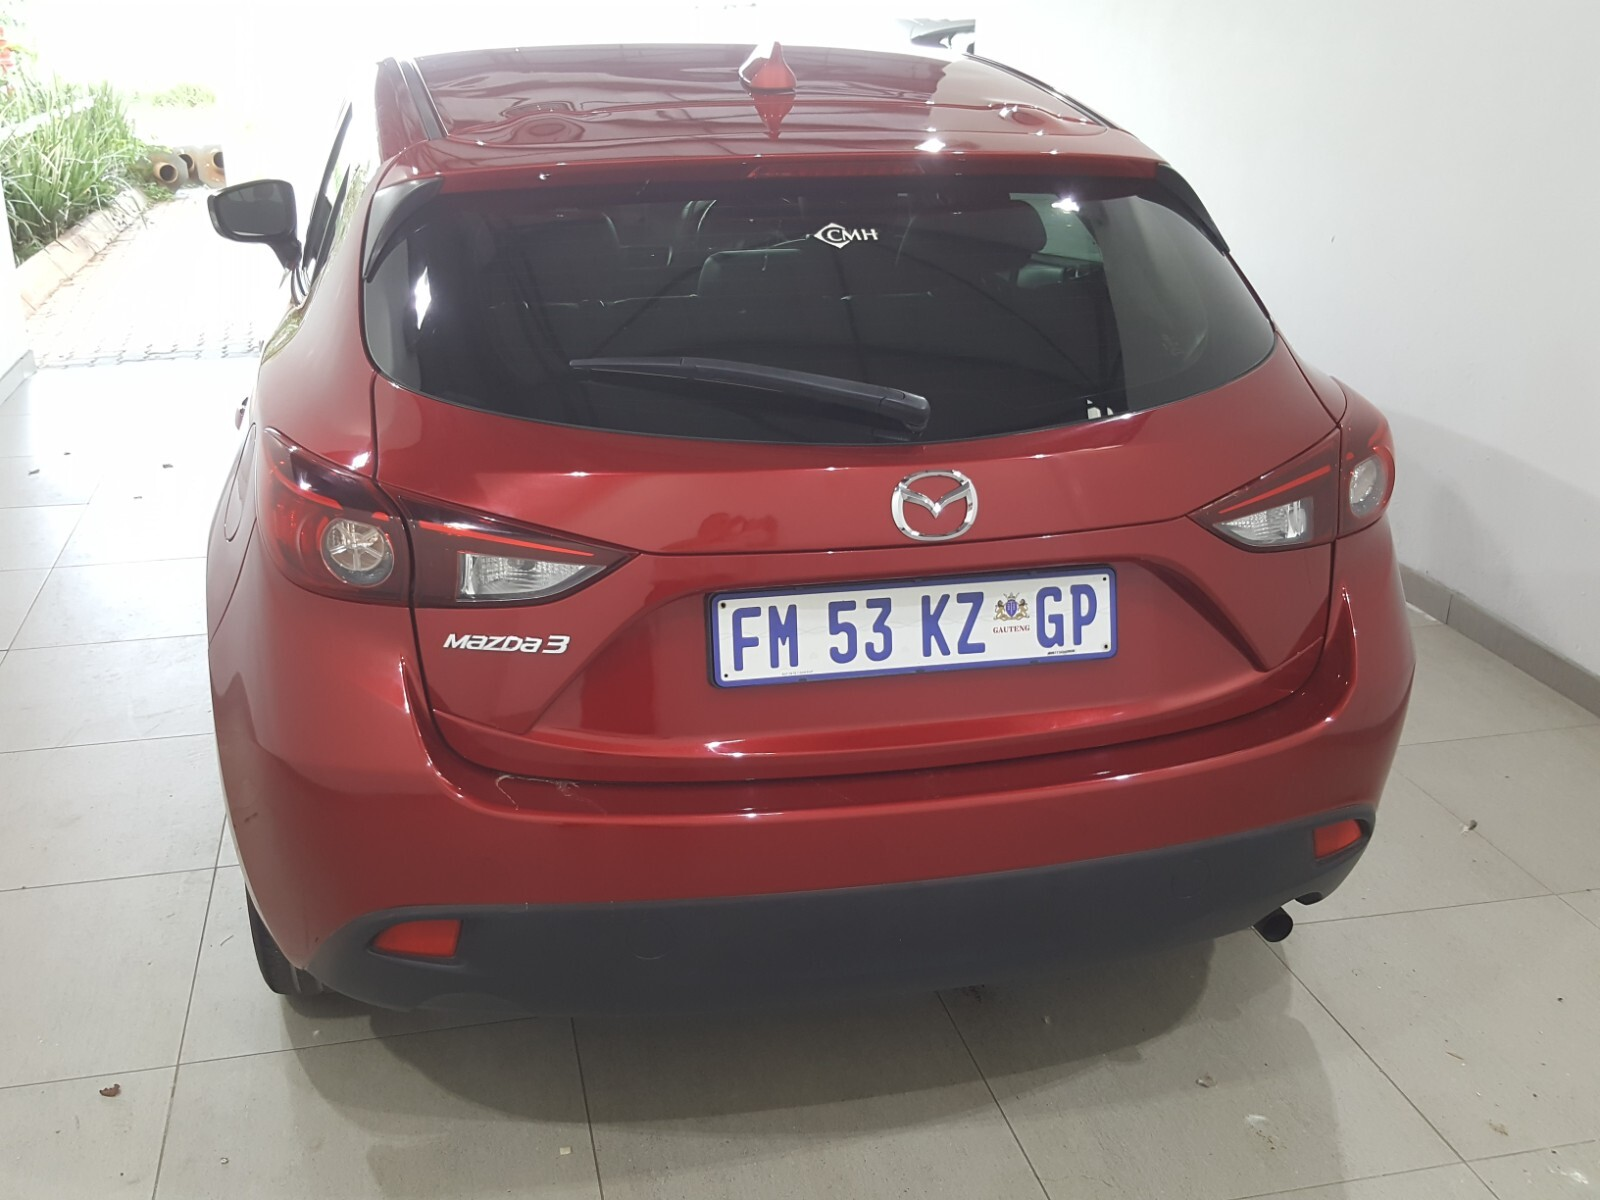 MAZDA 1.6 DYNAMIC 5DR A/T Roodepoort 6327025